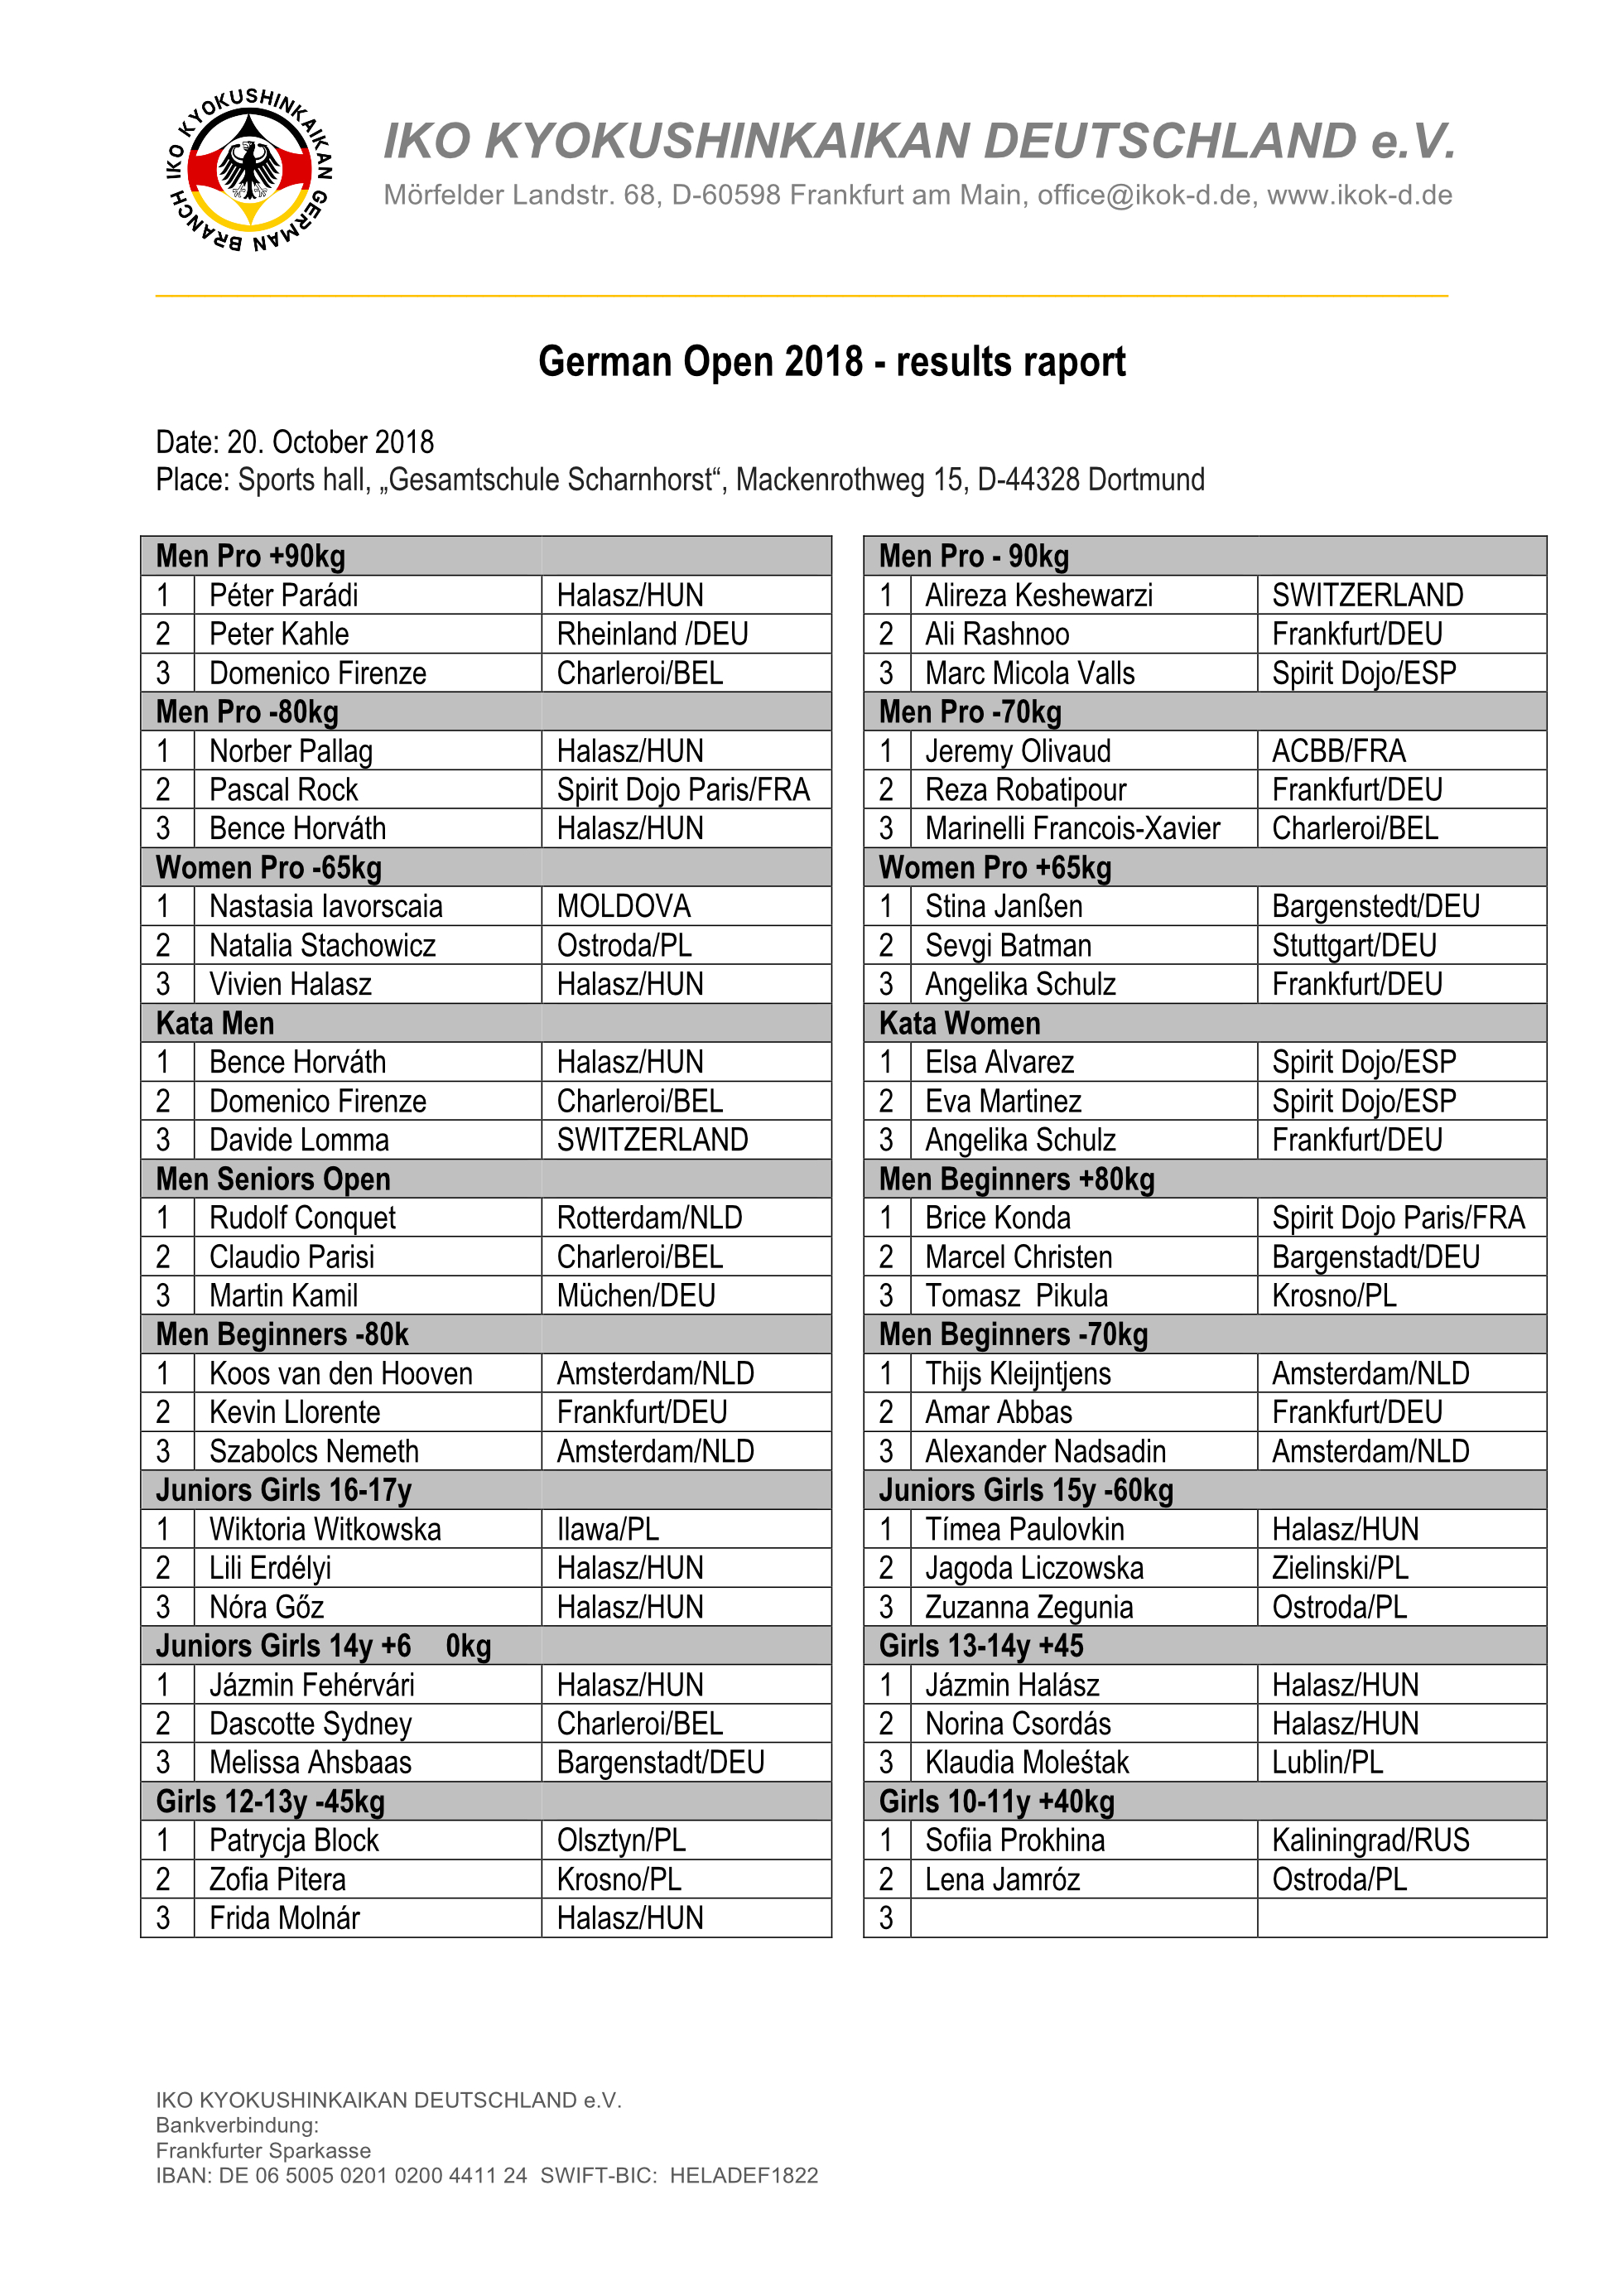 German Open 2018 - results raport2.1.jpg